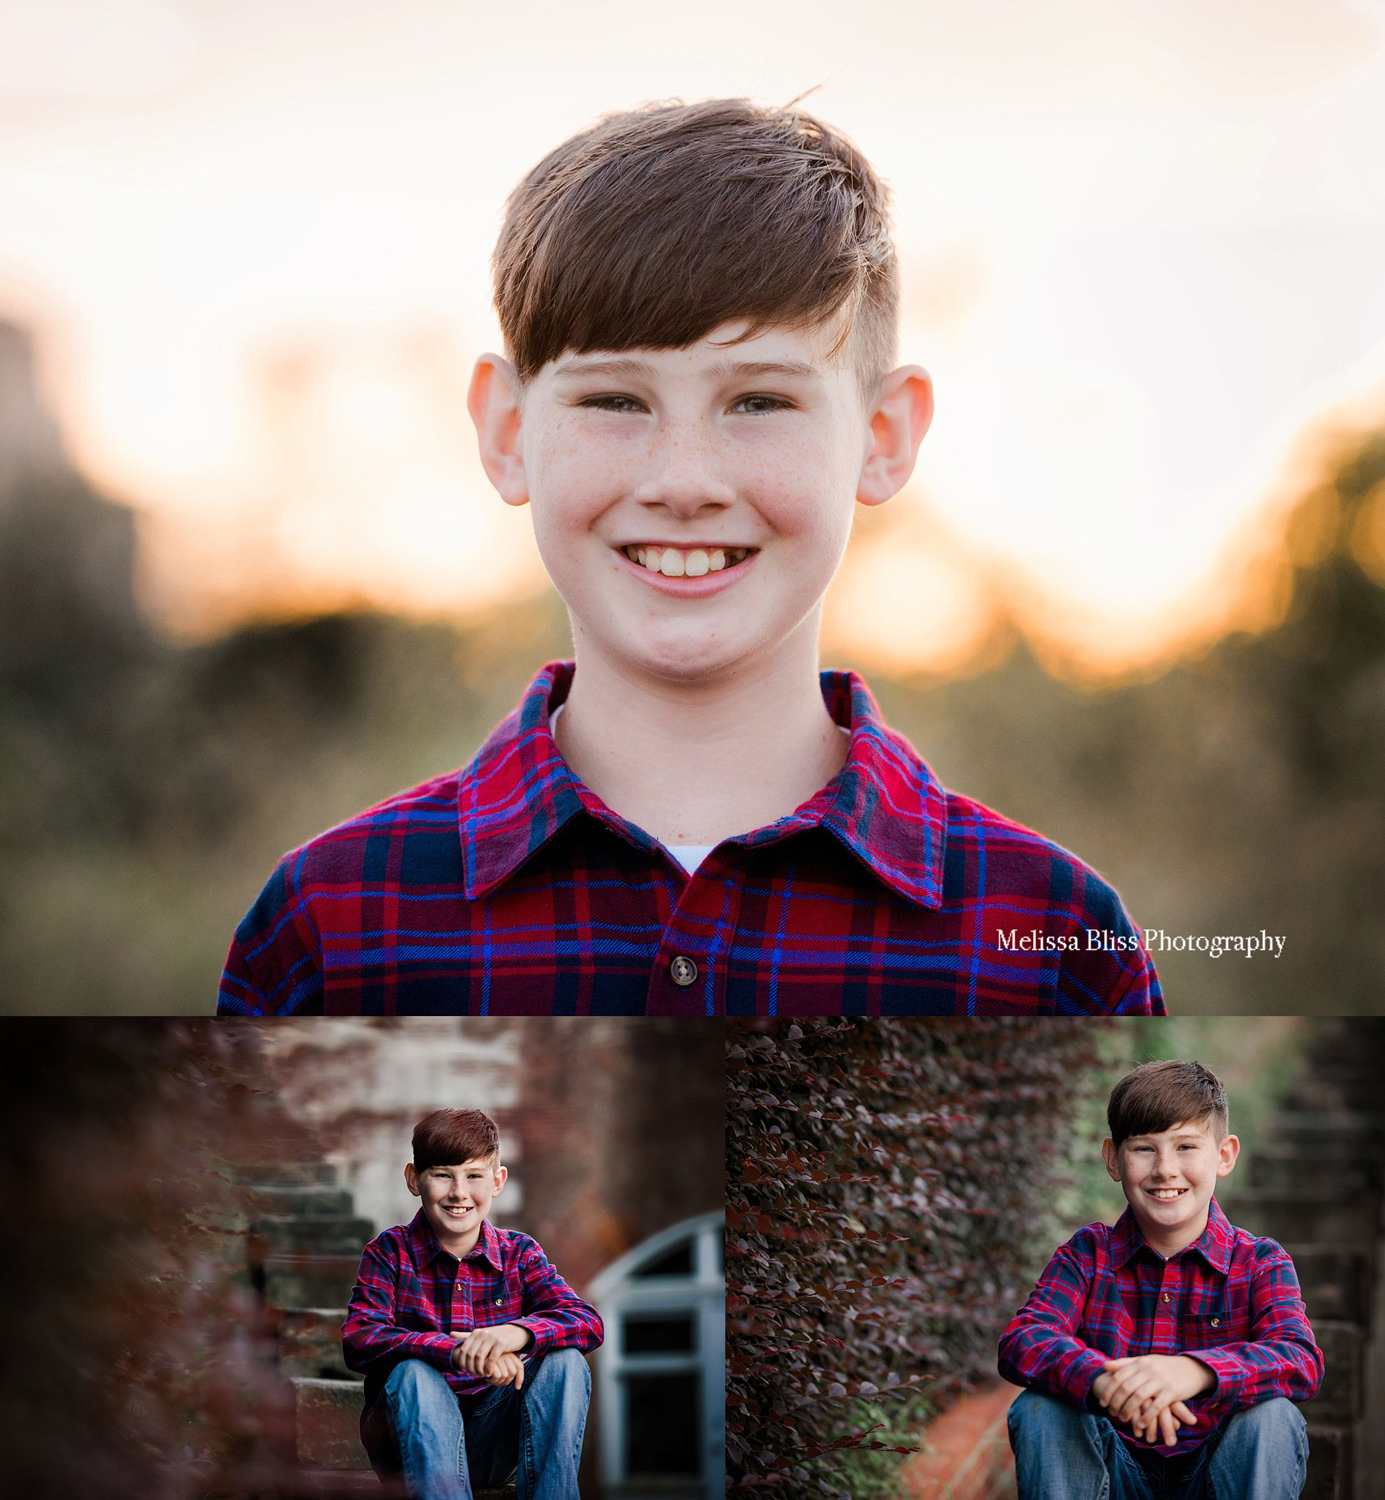 portraits-of-a-boy-melissa-bliss-photography-professional-child-photographer-norfolk-virginia-beach.jpg